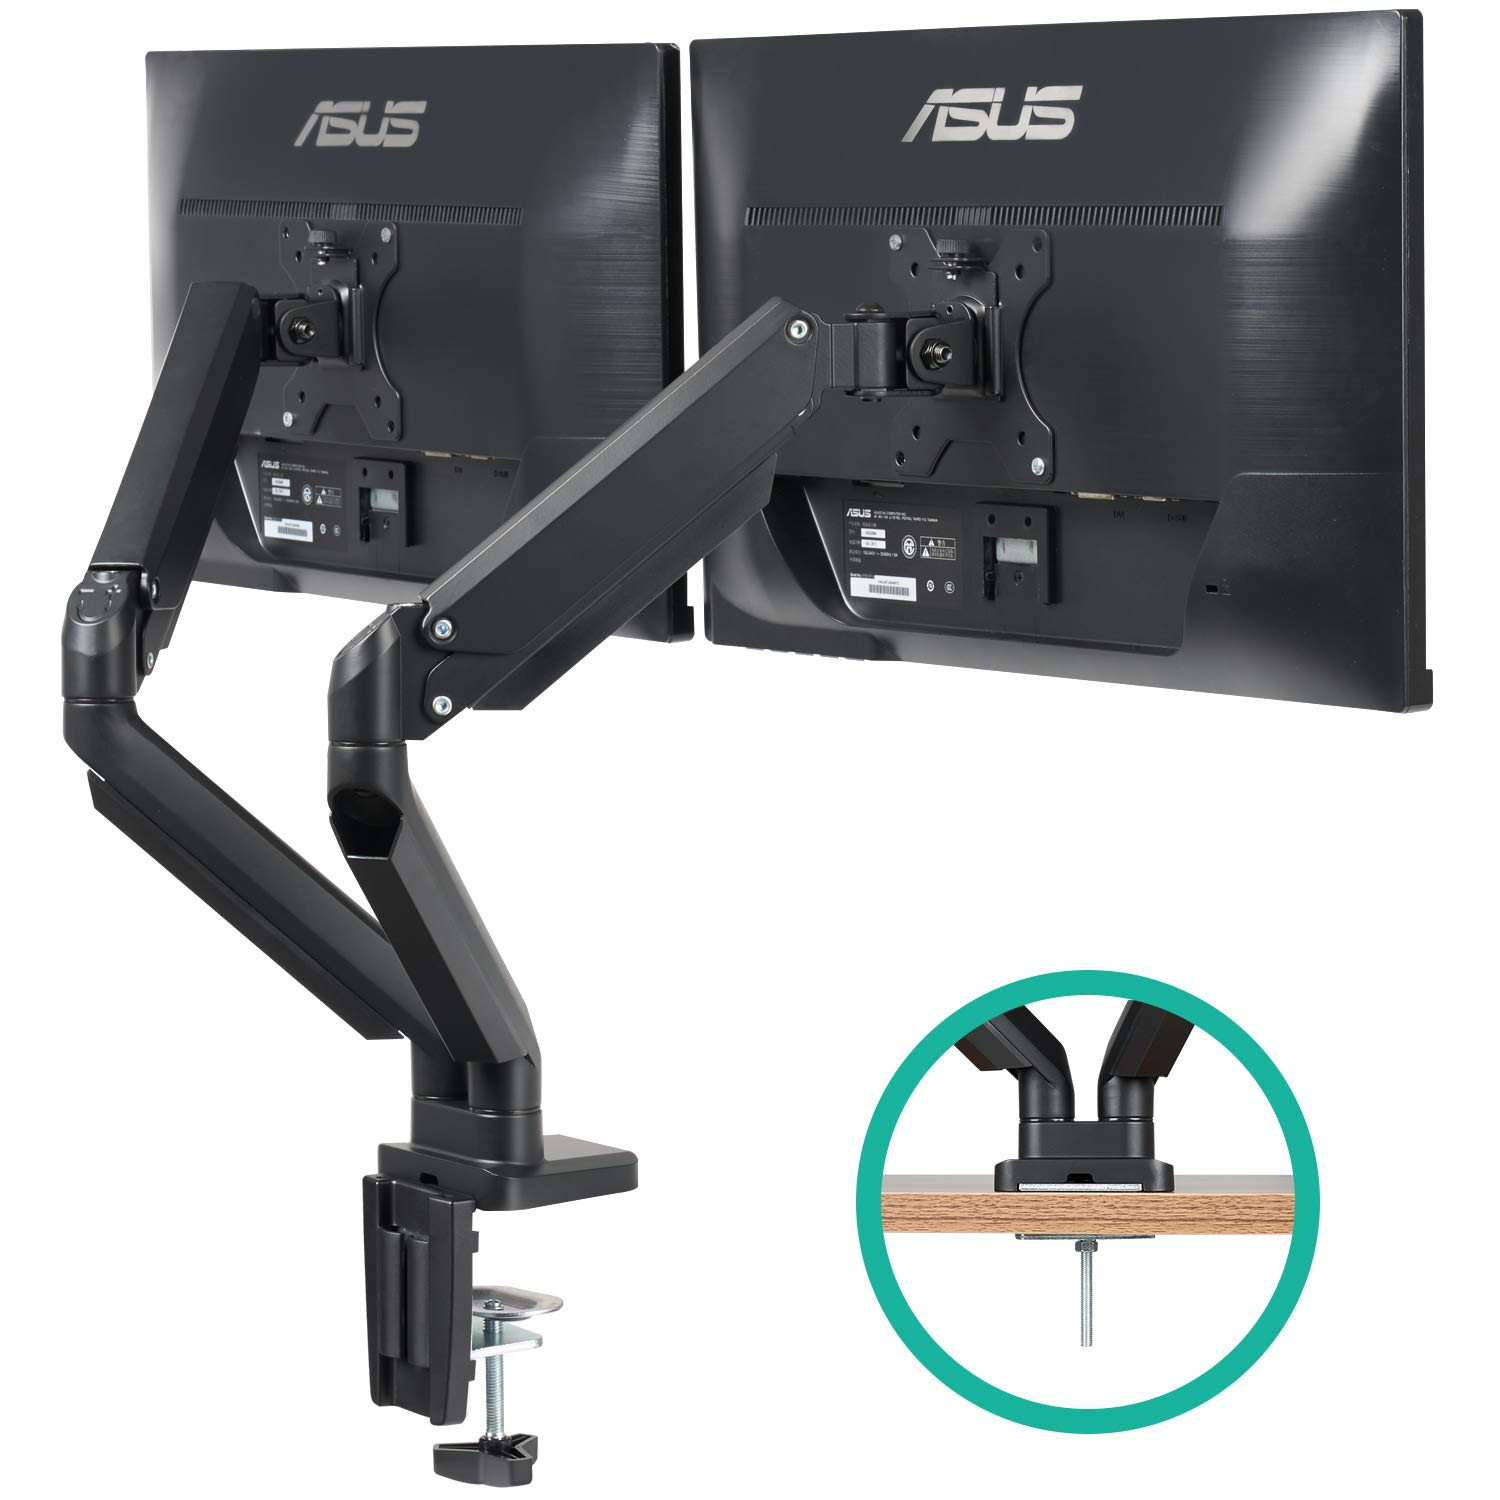 DUAL ARM LCD MONITOR DESK MOUNT BRACKET ARTICULATING UP DOWN IN OUT TILT SWIVEL